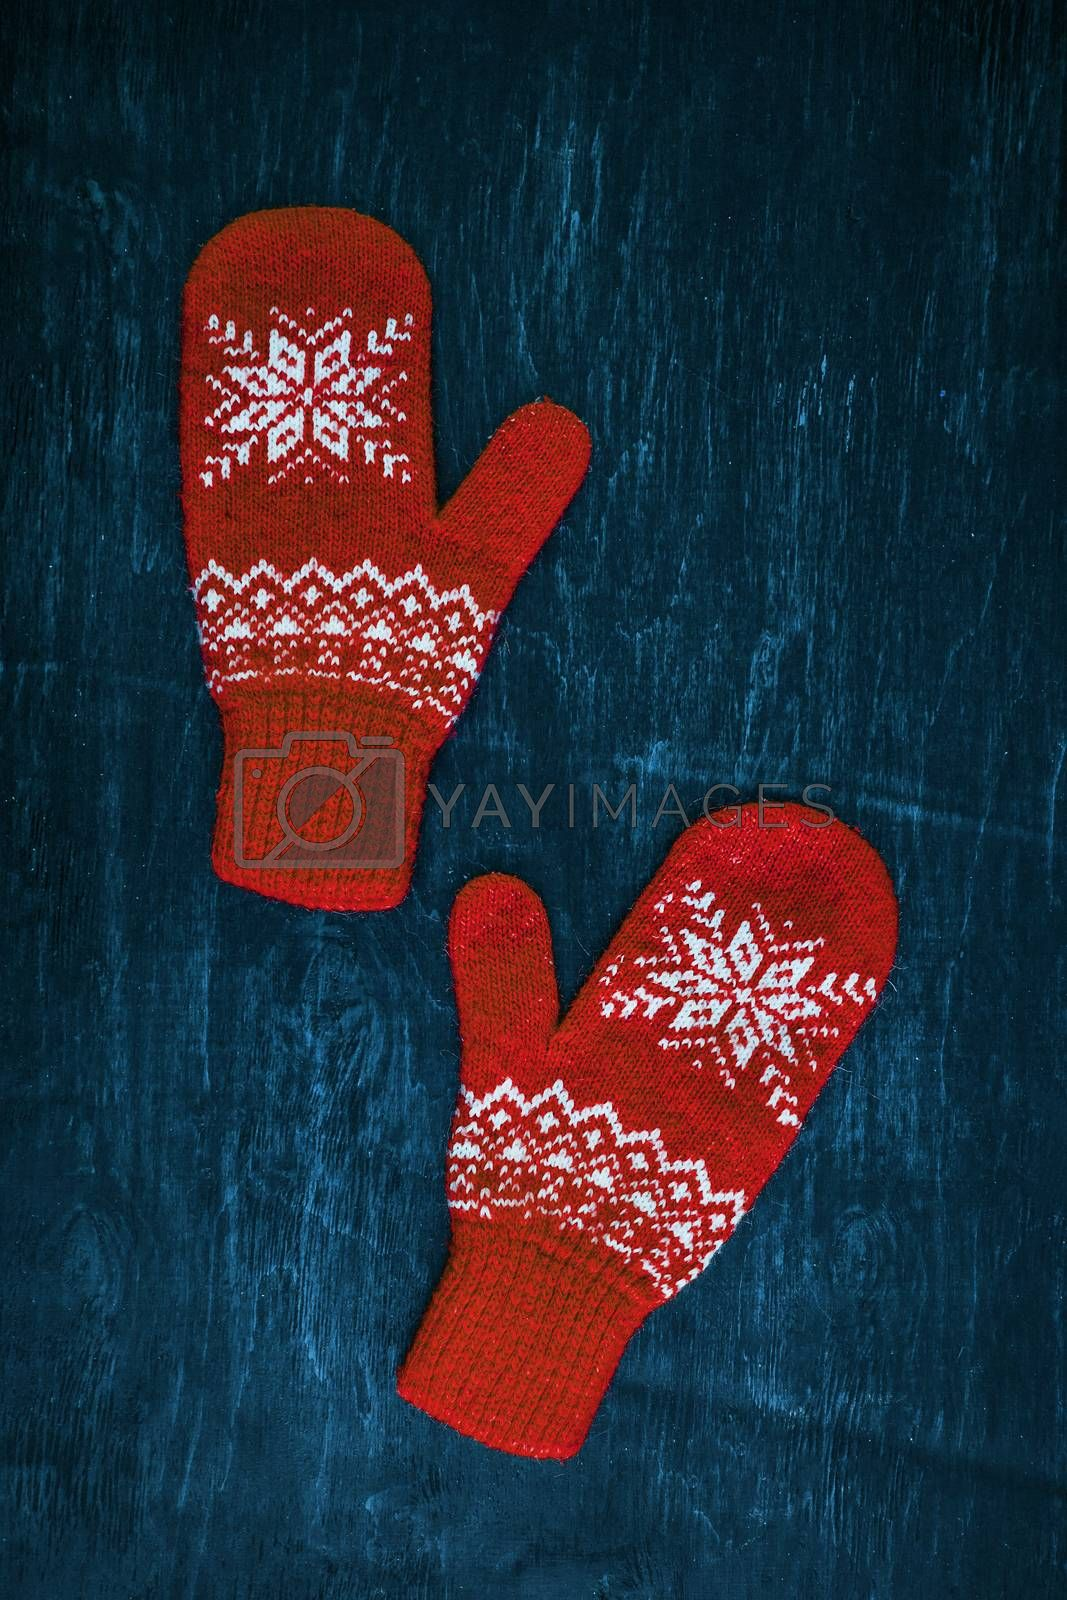 Royalty free image of a pair of red-pink-lilac-magenta purple knitted mittens on a dark blue-green-brown wooden by Tanacha